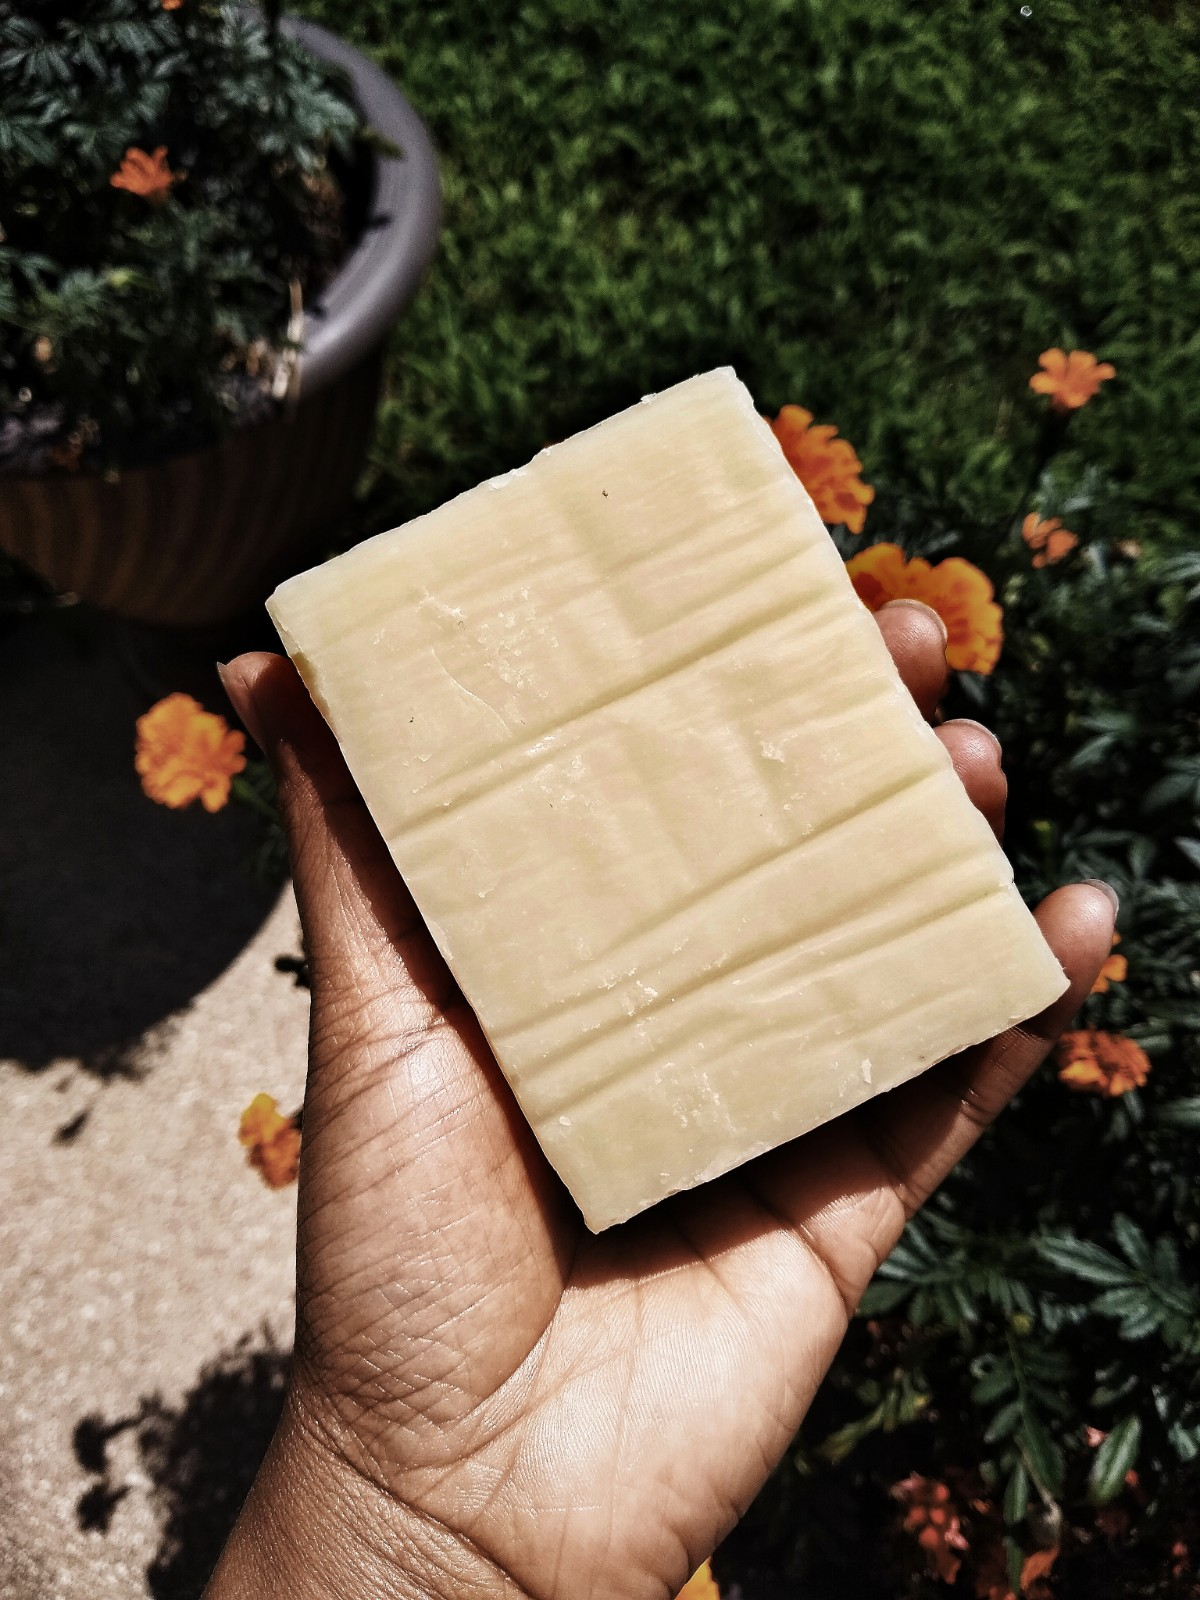 This Conditioning Shampoo Bar Sped Up My Wash Day Routine!